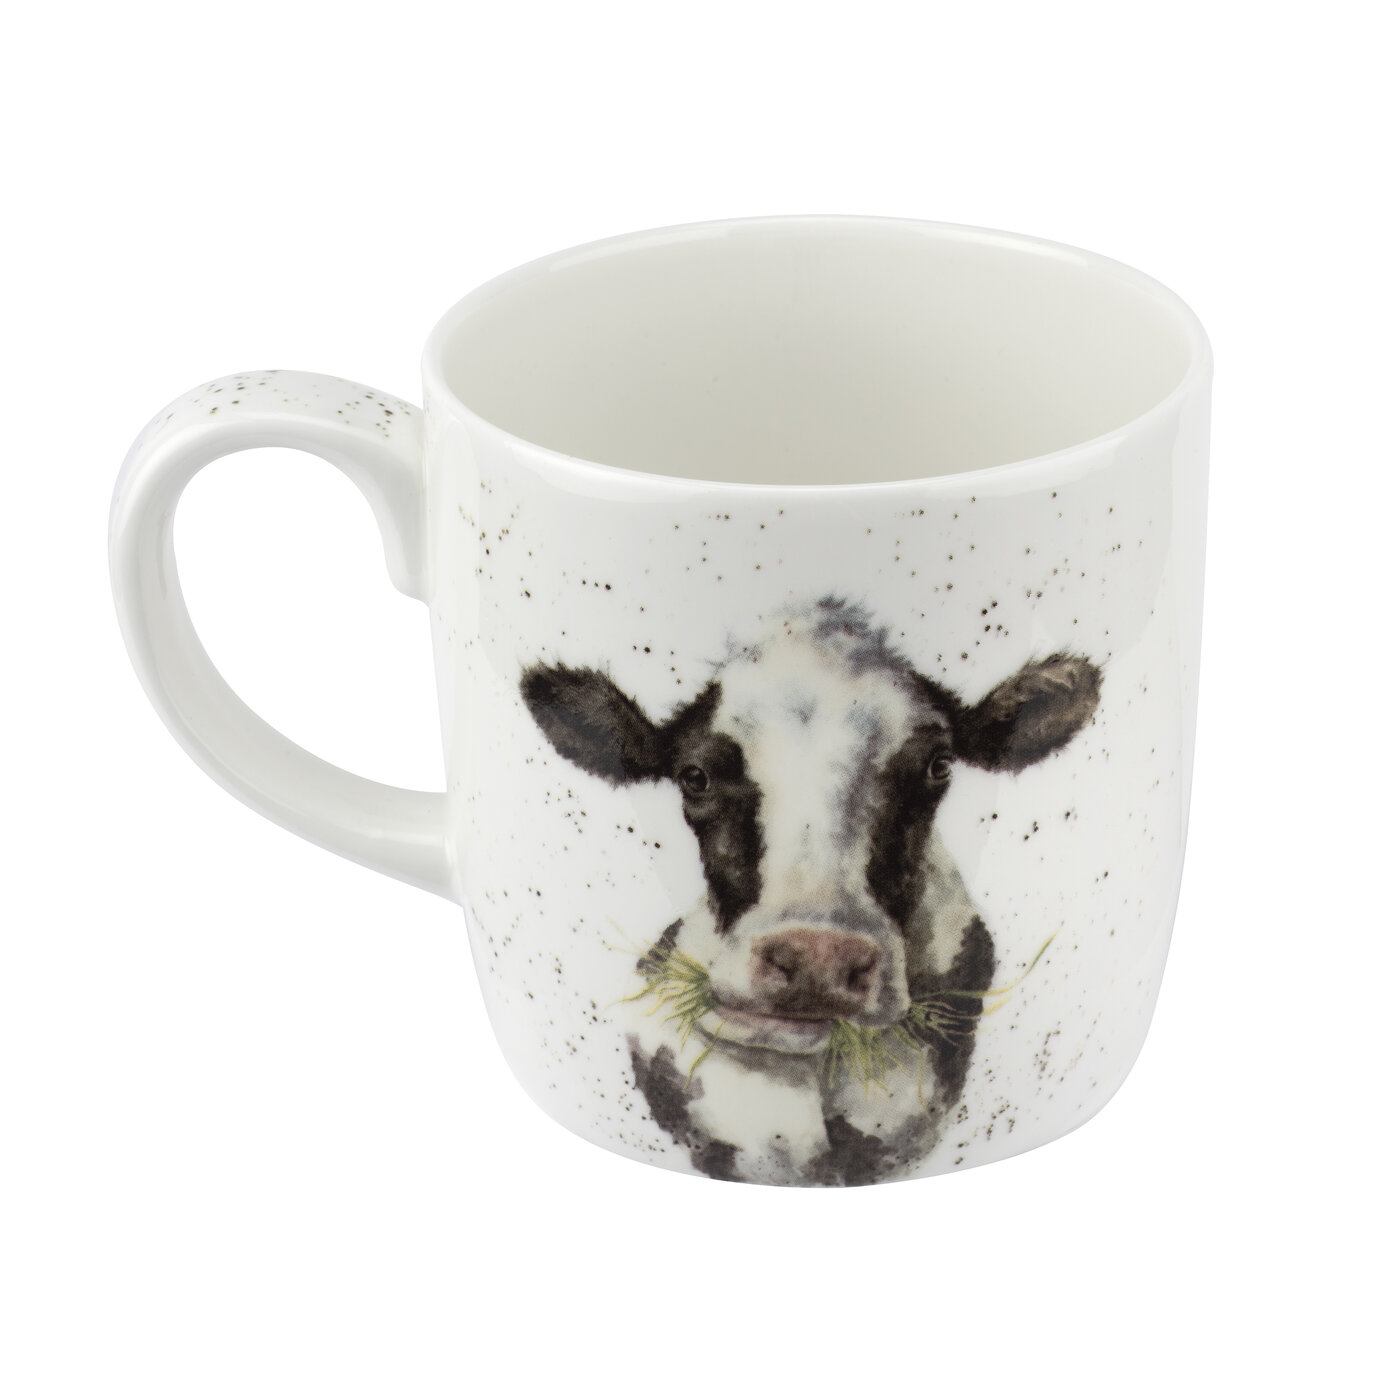 Royal Worcester Wrendale Designs Mug 14 Ounce Mooo (Cow) image number 1